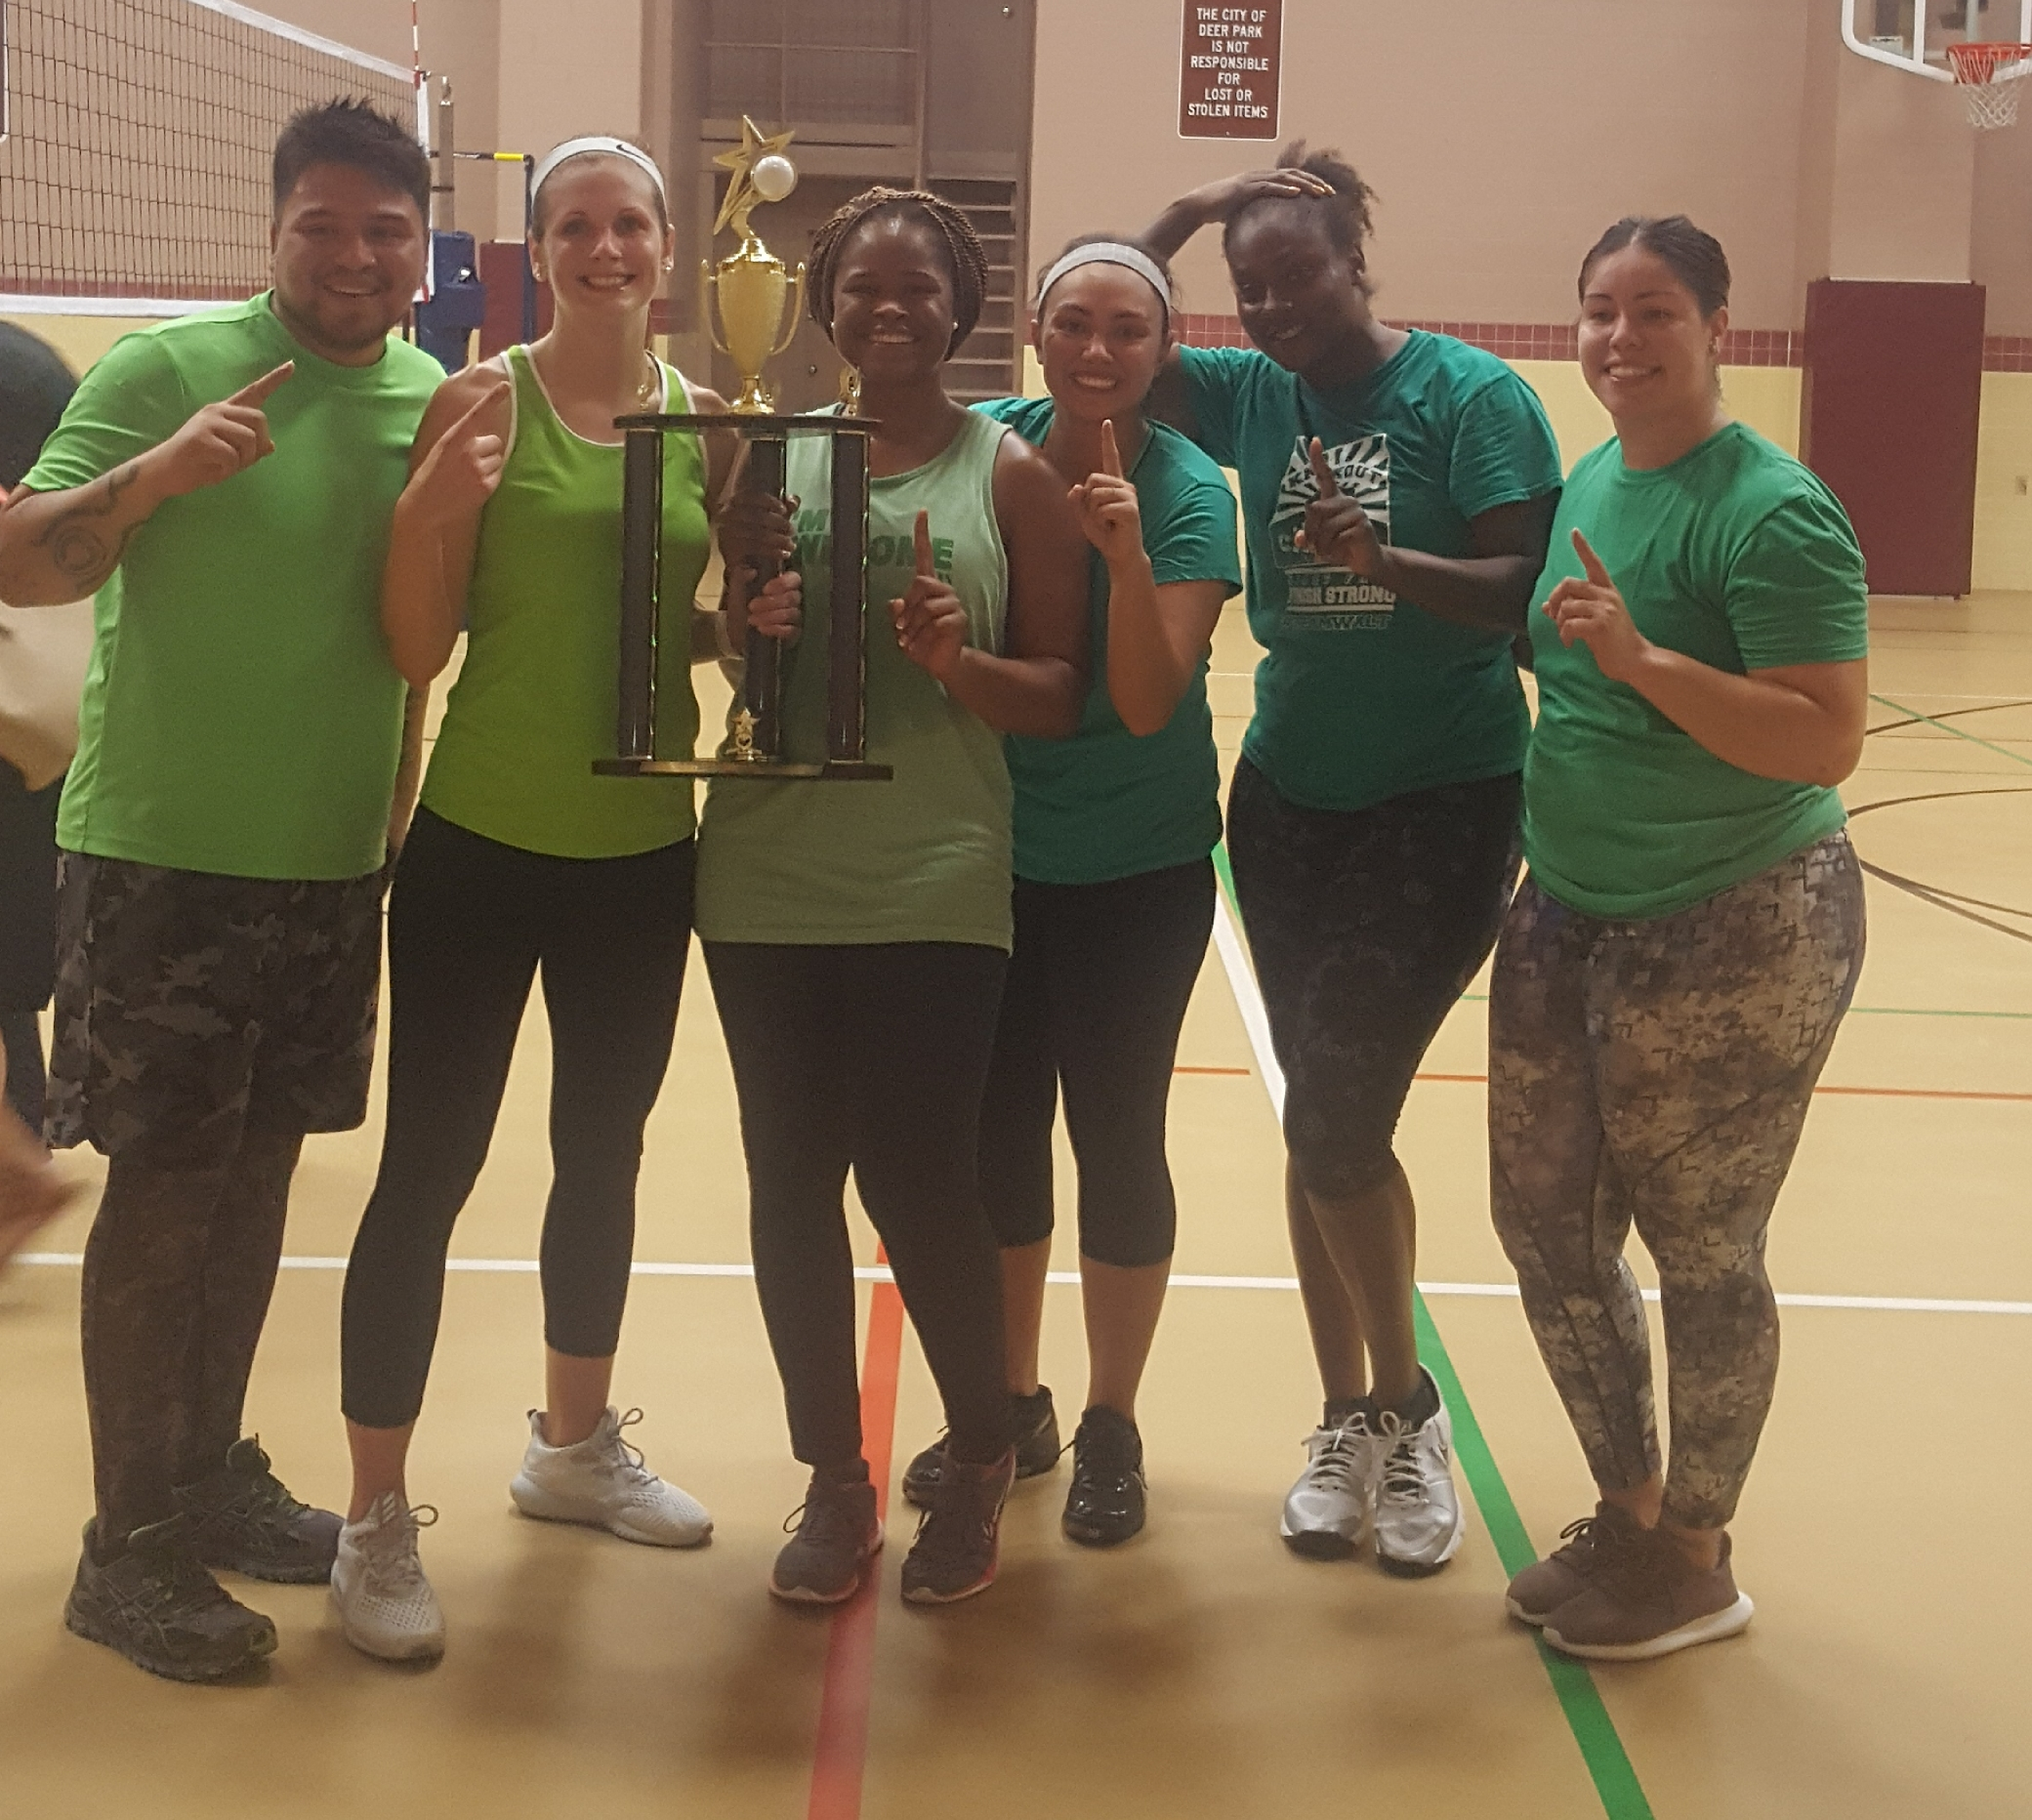 Volleyball winners smiling and holding a trophy